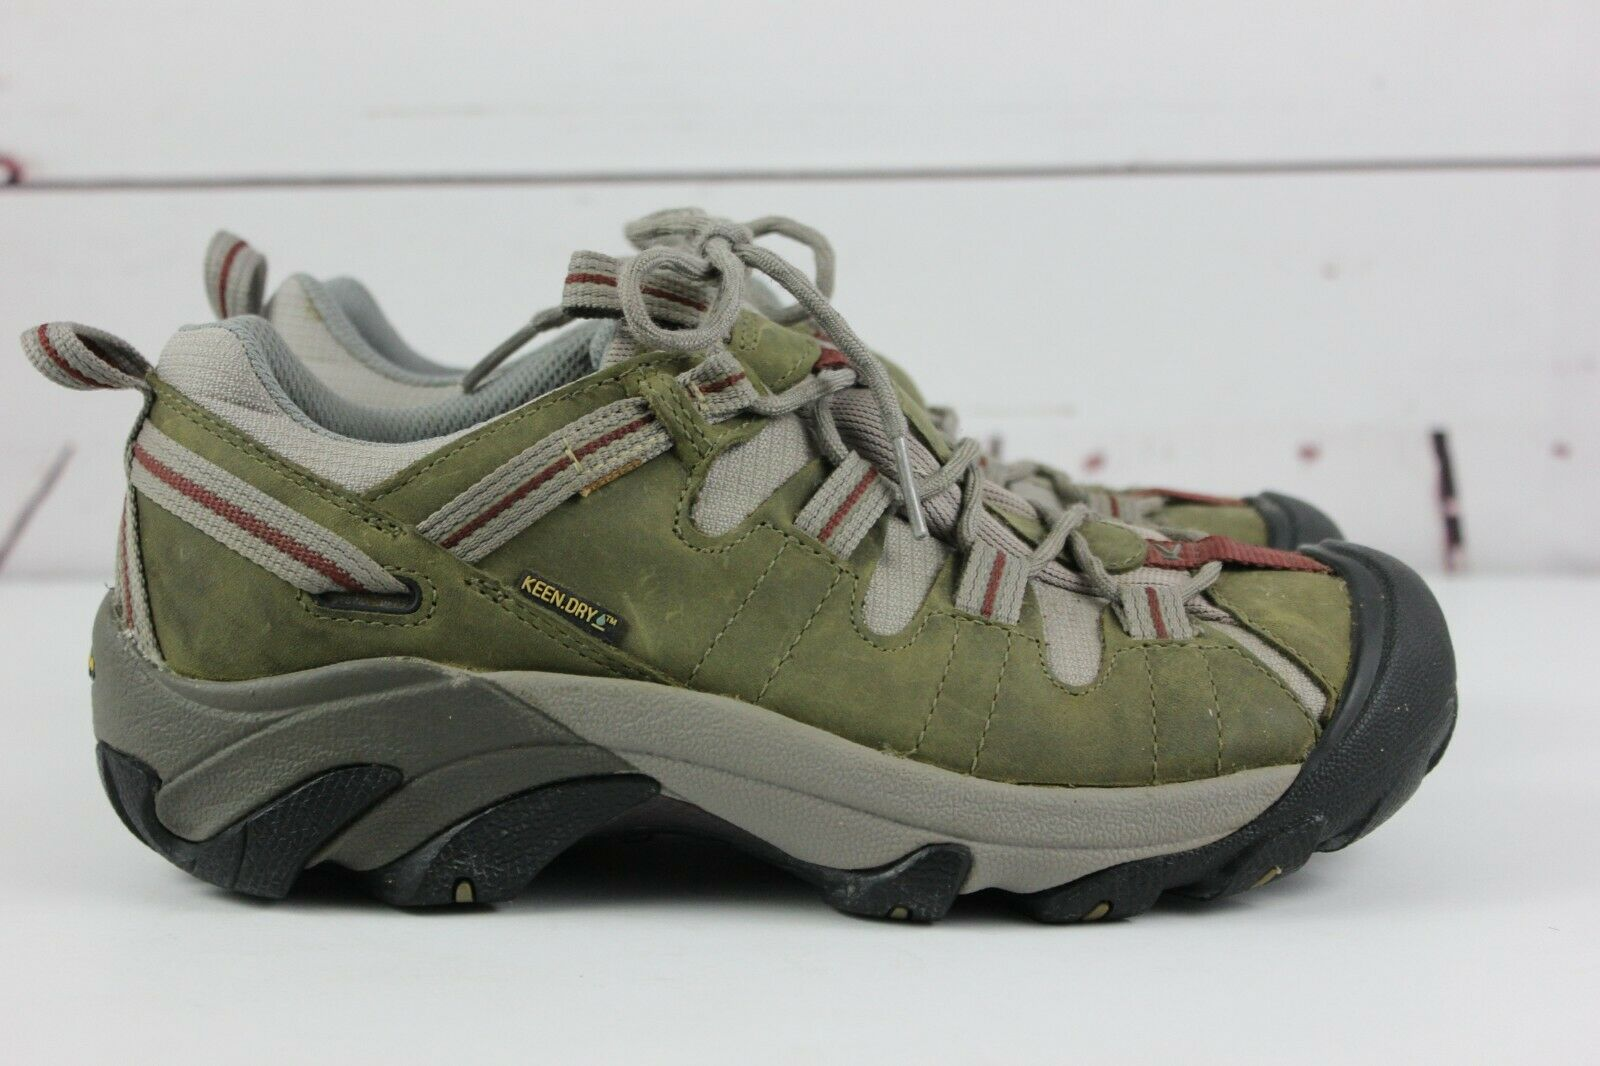 Keen Women's Keen Dry Green Tan Size 7.5 Low Hiking shoes Boots